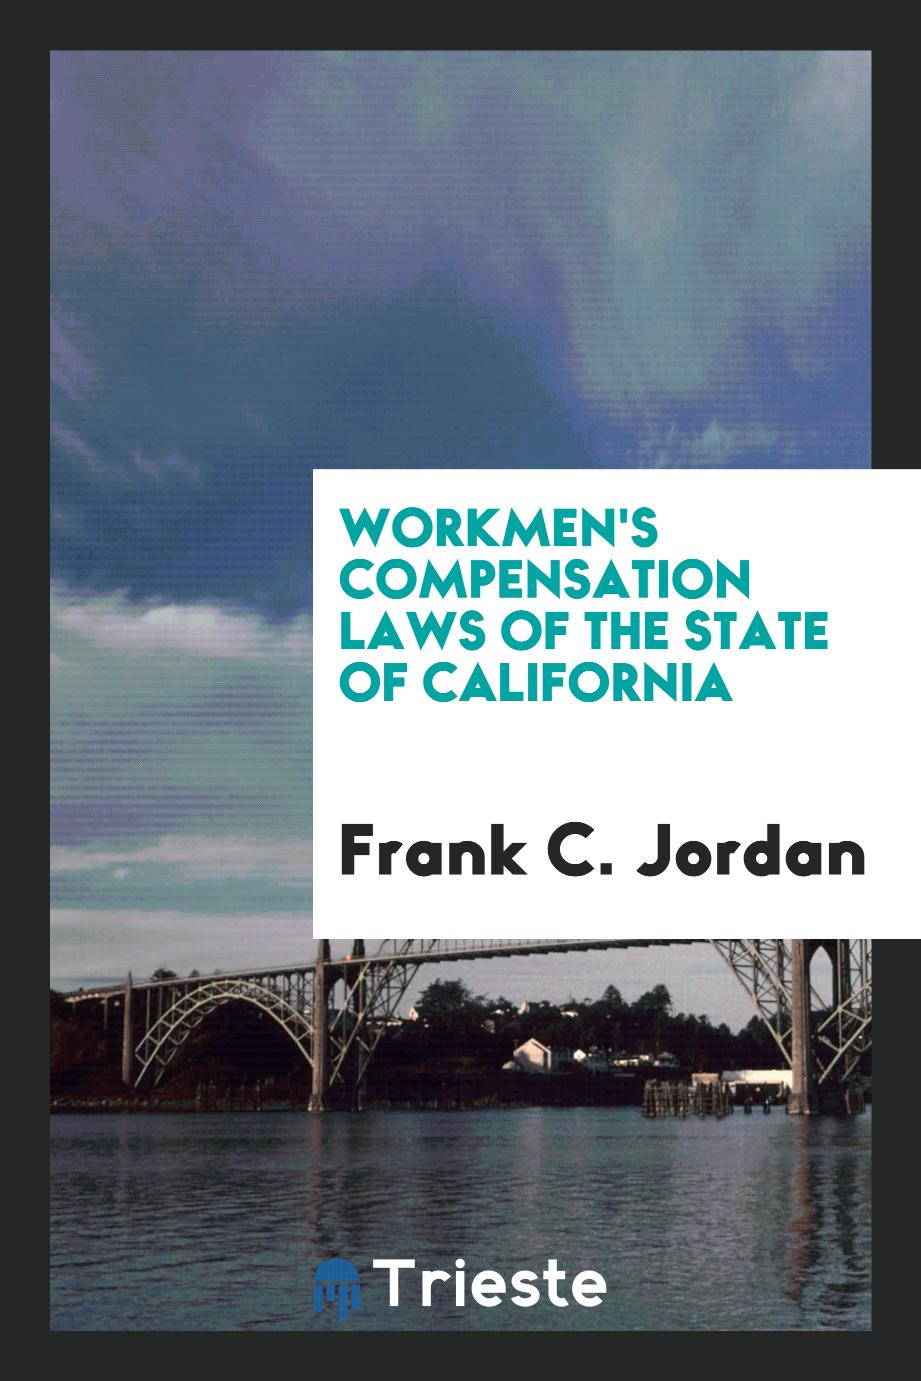 Workmen's Compensation Laws of the State of California